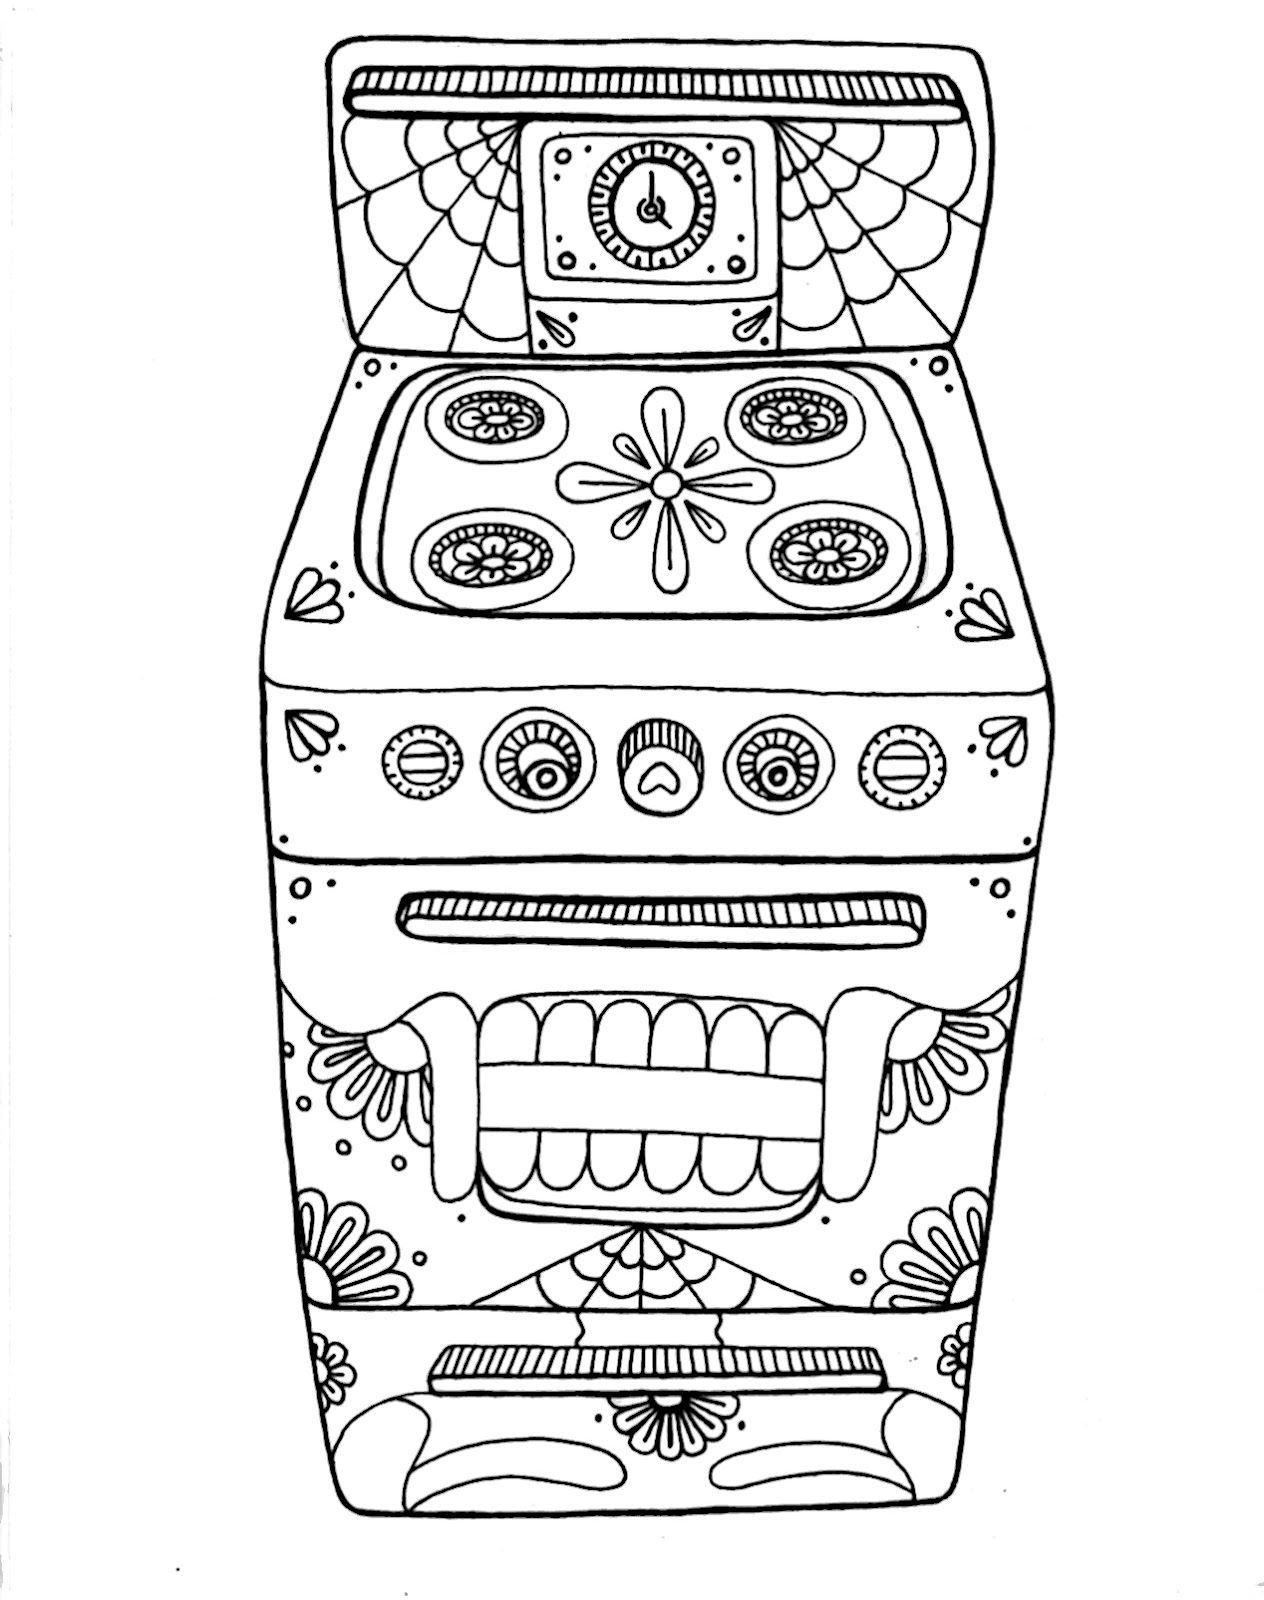 Wenchkin S Coloring Pages Day Of The Oven Coloring Pages Skull Coloring Pages Cool Coloring Pages